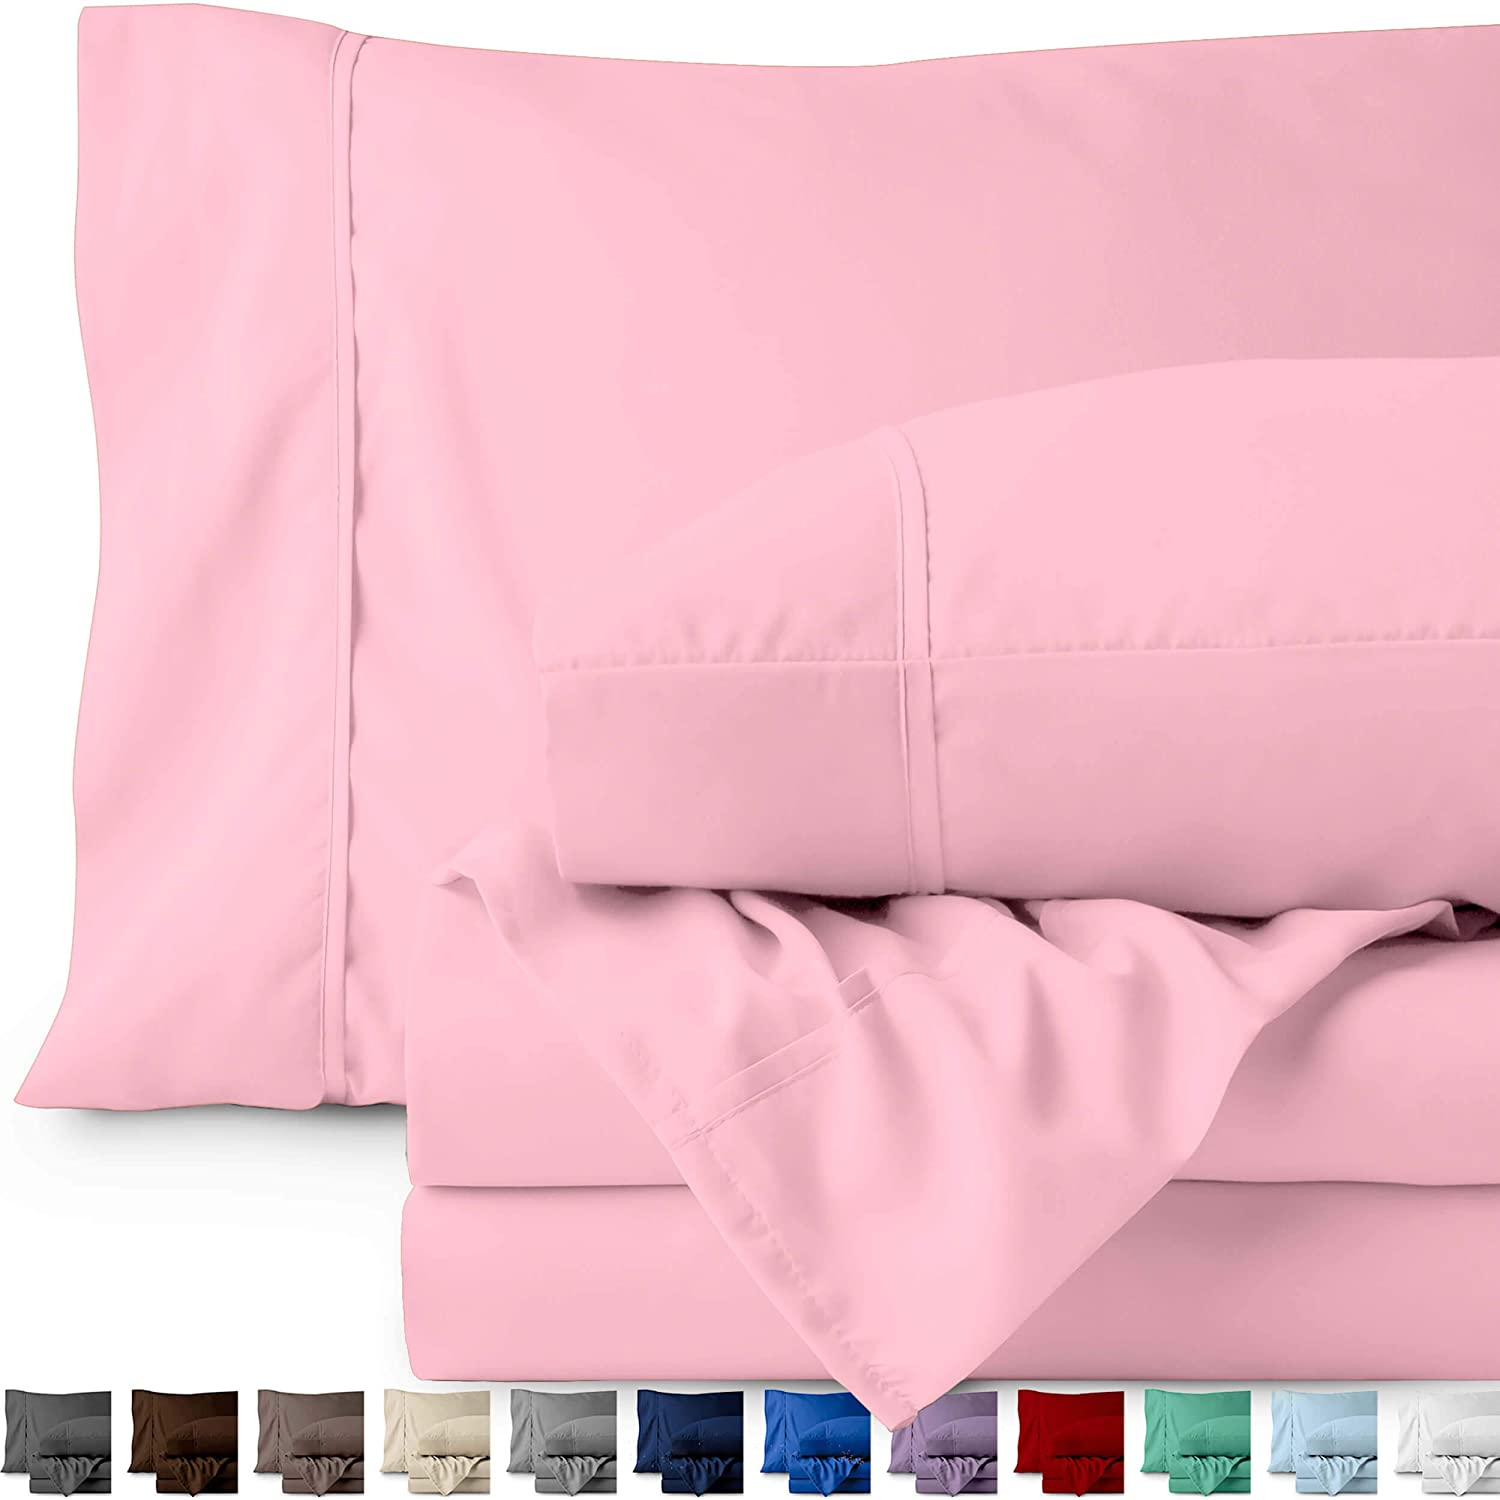 Bare Home Twin XL Sheet Set - College Dorm Size - Premium 1800 Ultra-Soft Microfiber Sheets Twin Extra Long - Double Brushed - Hypoallergenic - Wrinkle Resistant (Twin XL, Light Pink)